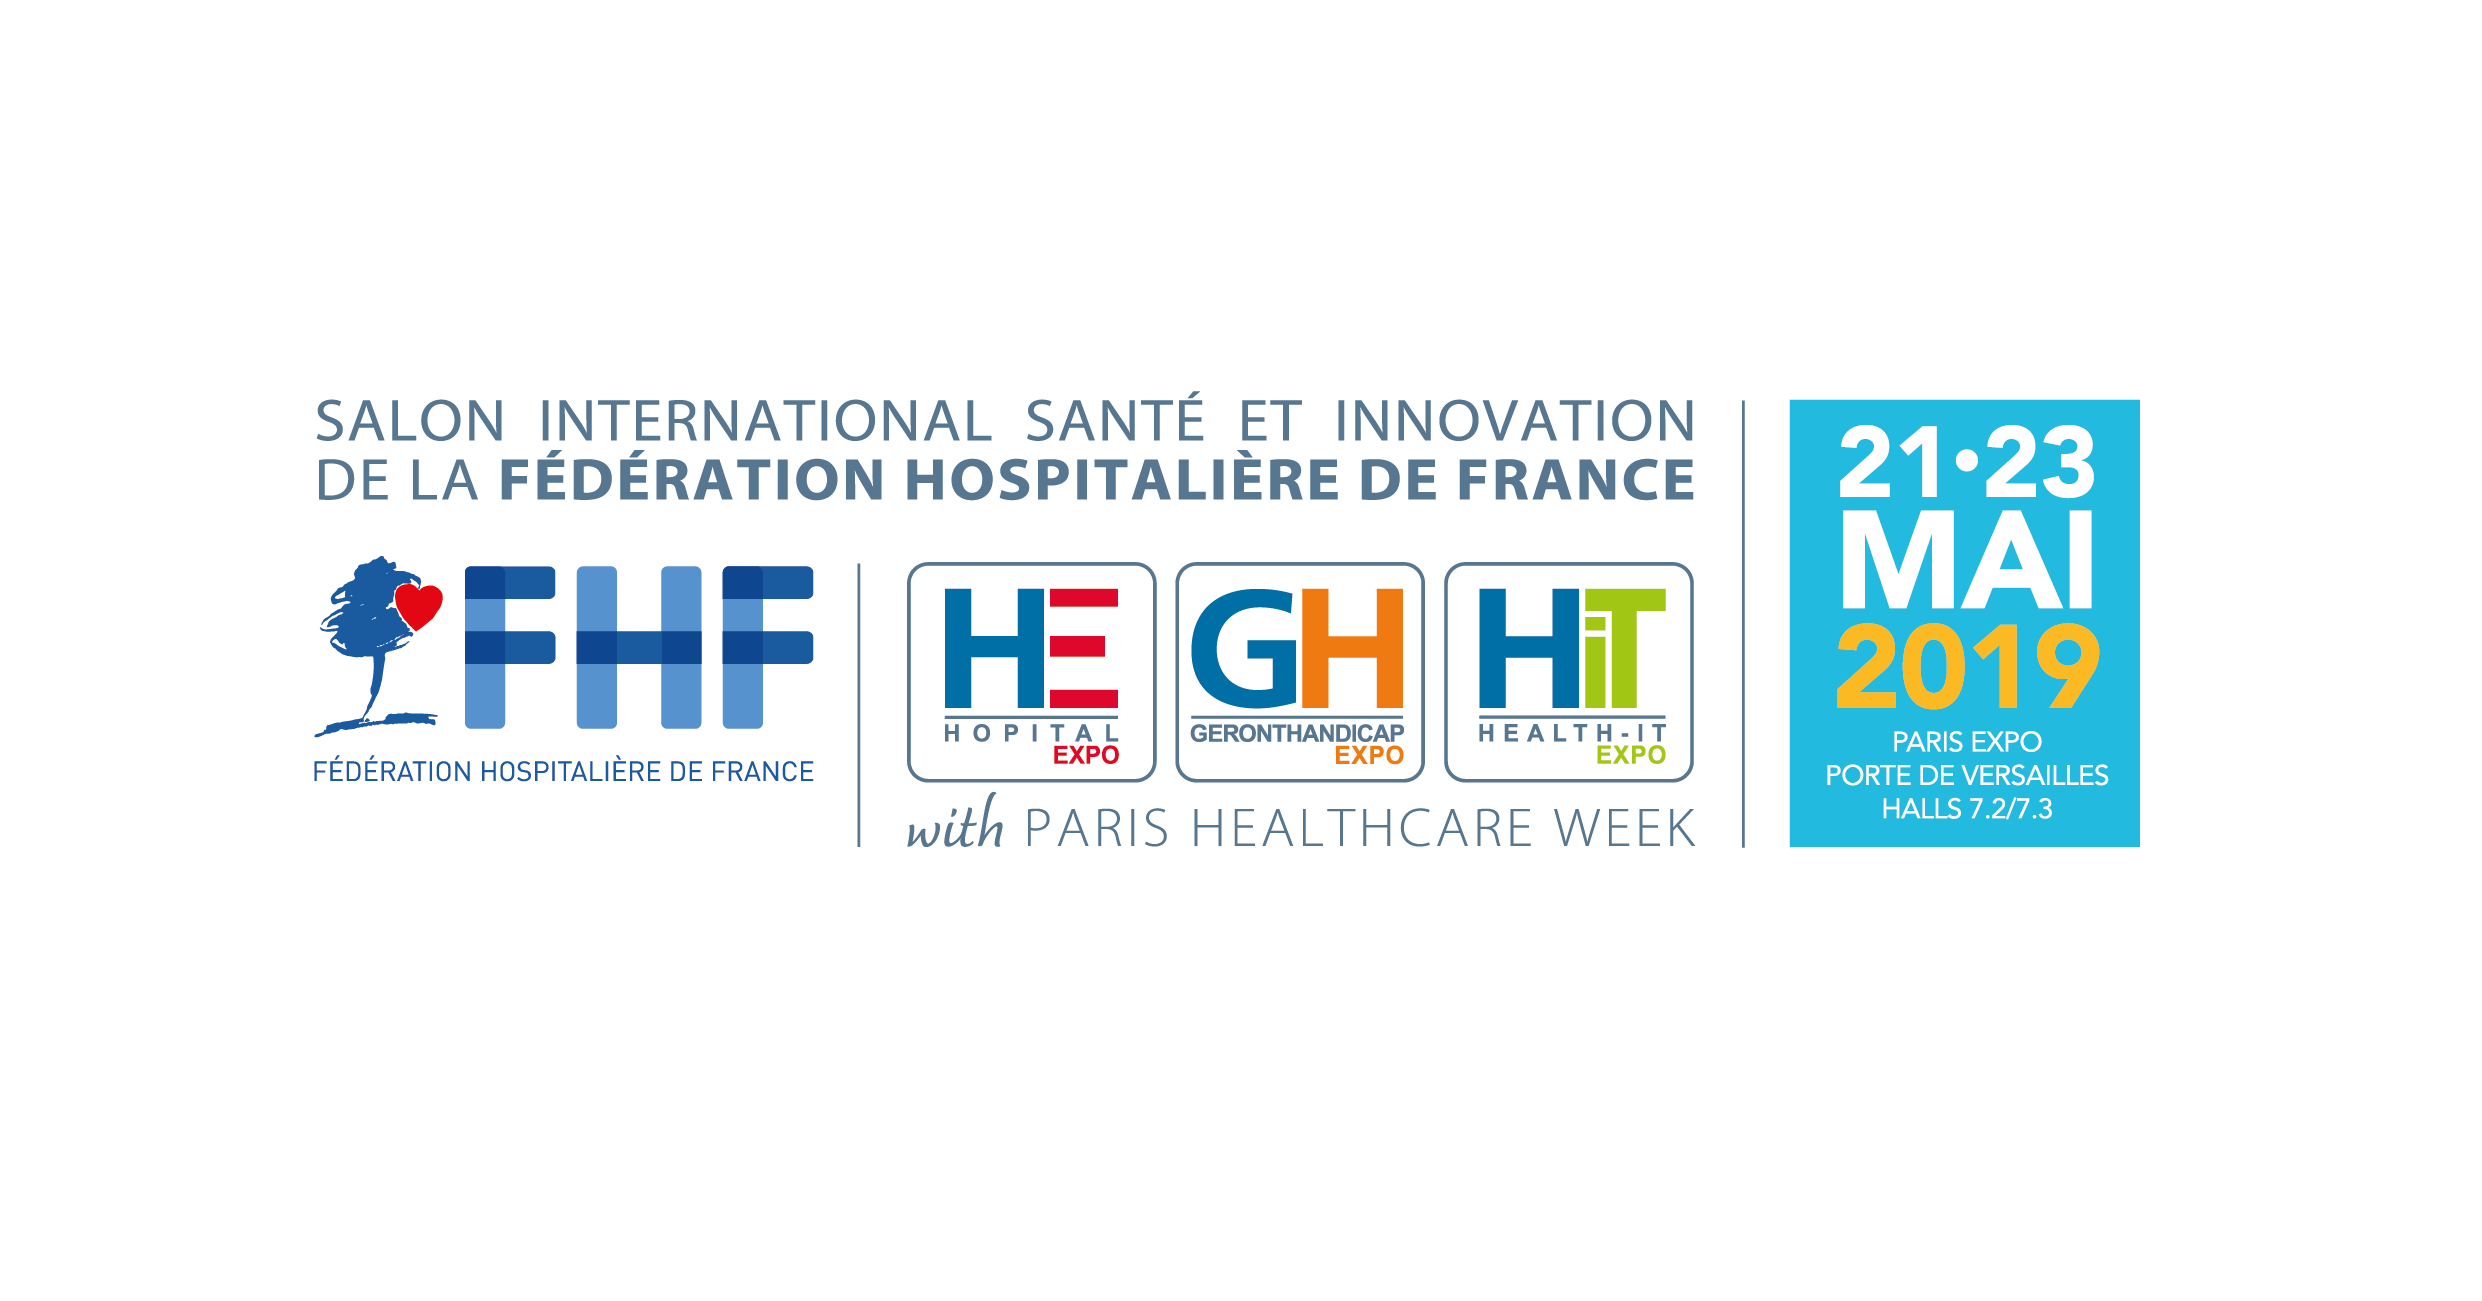 Save the date les 21, 22 et 23 mai 2019 Exhausmed sera présent à Paris Healthcare Week au stand K73/HEALTH-ITEXPO - Paris Expo Porte de Versailles.